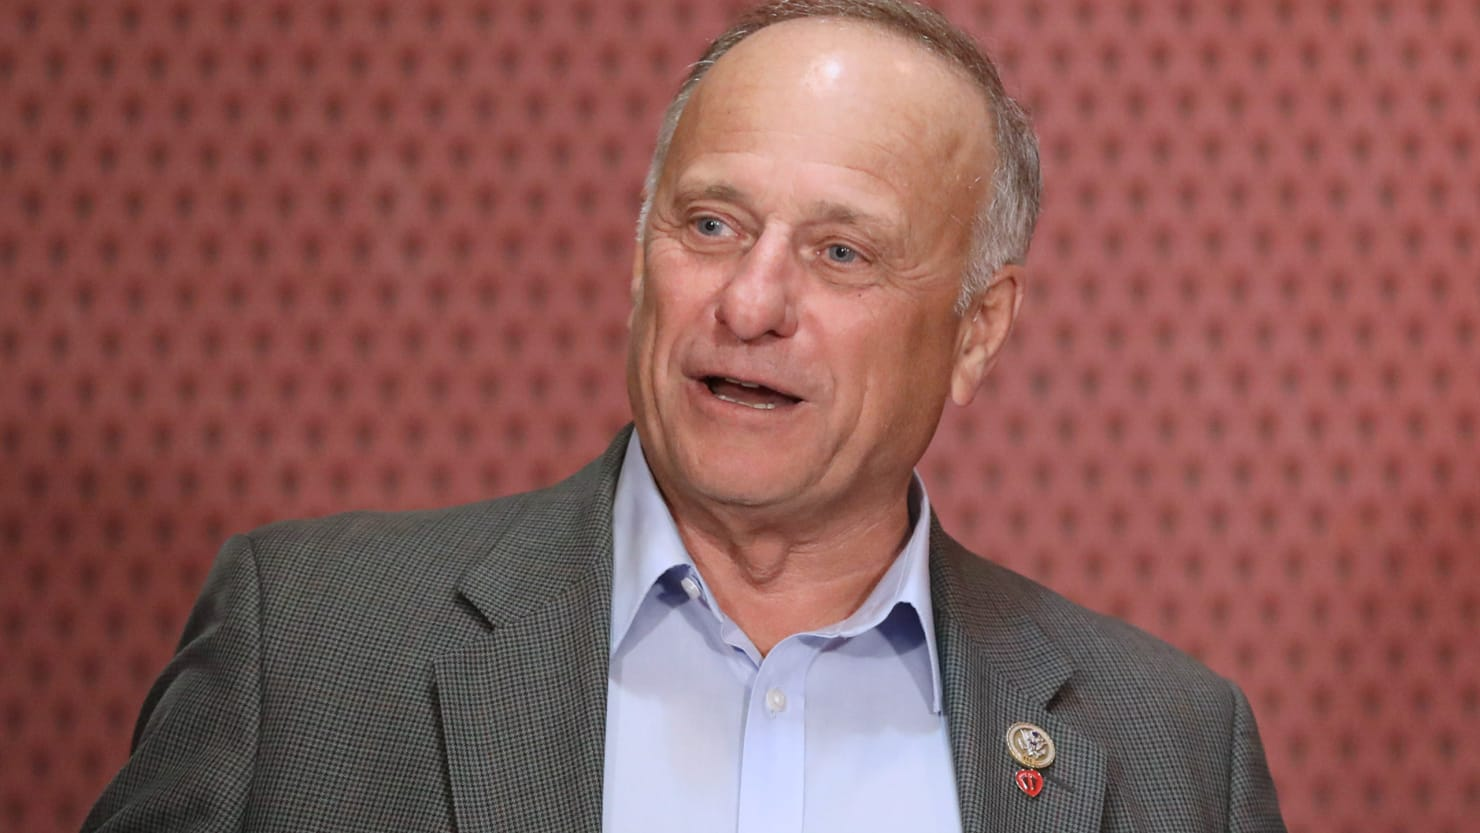 Steve King: New Orleans' Hurricane Katrina Victims Only Asked for Help, Iowans 'Take Care of Each Other'